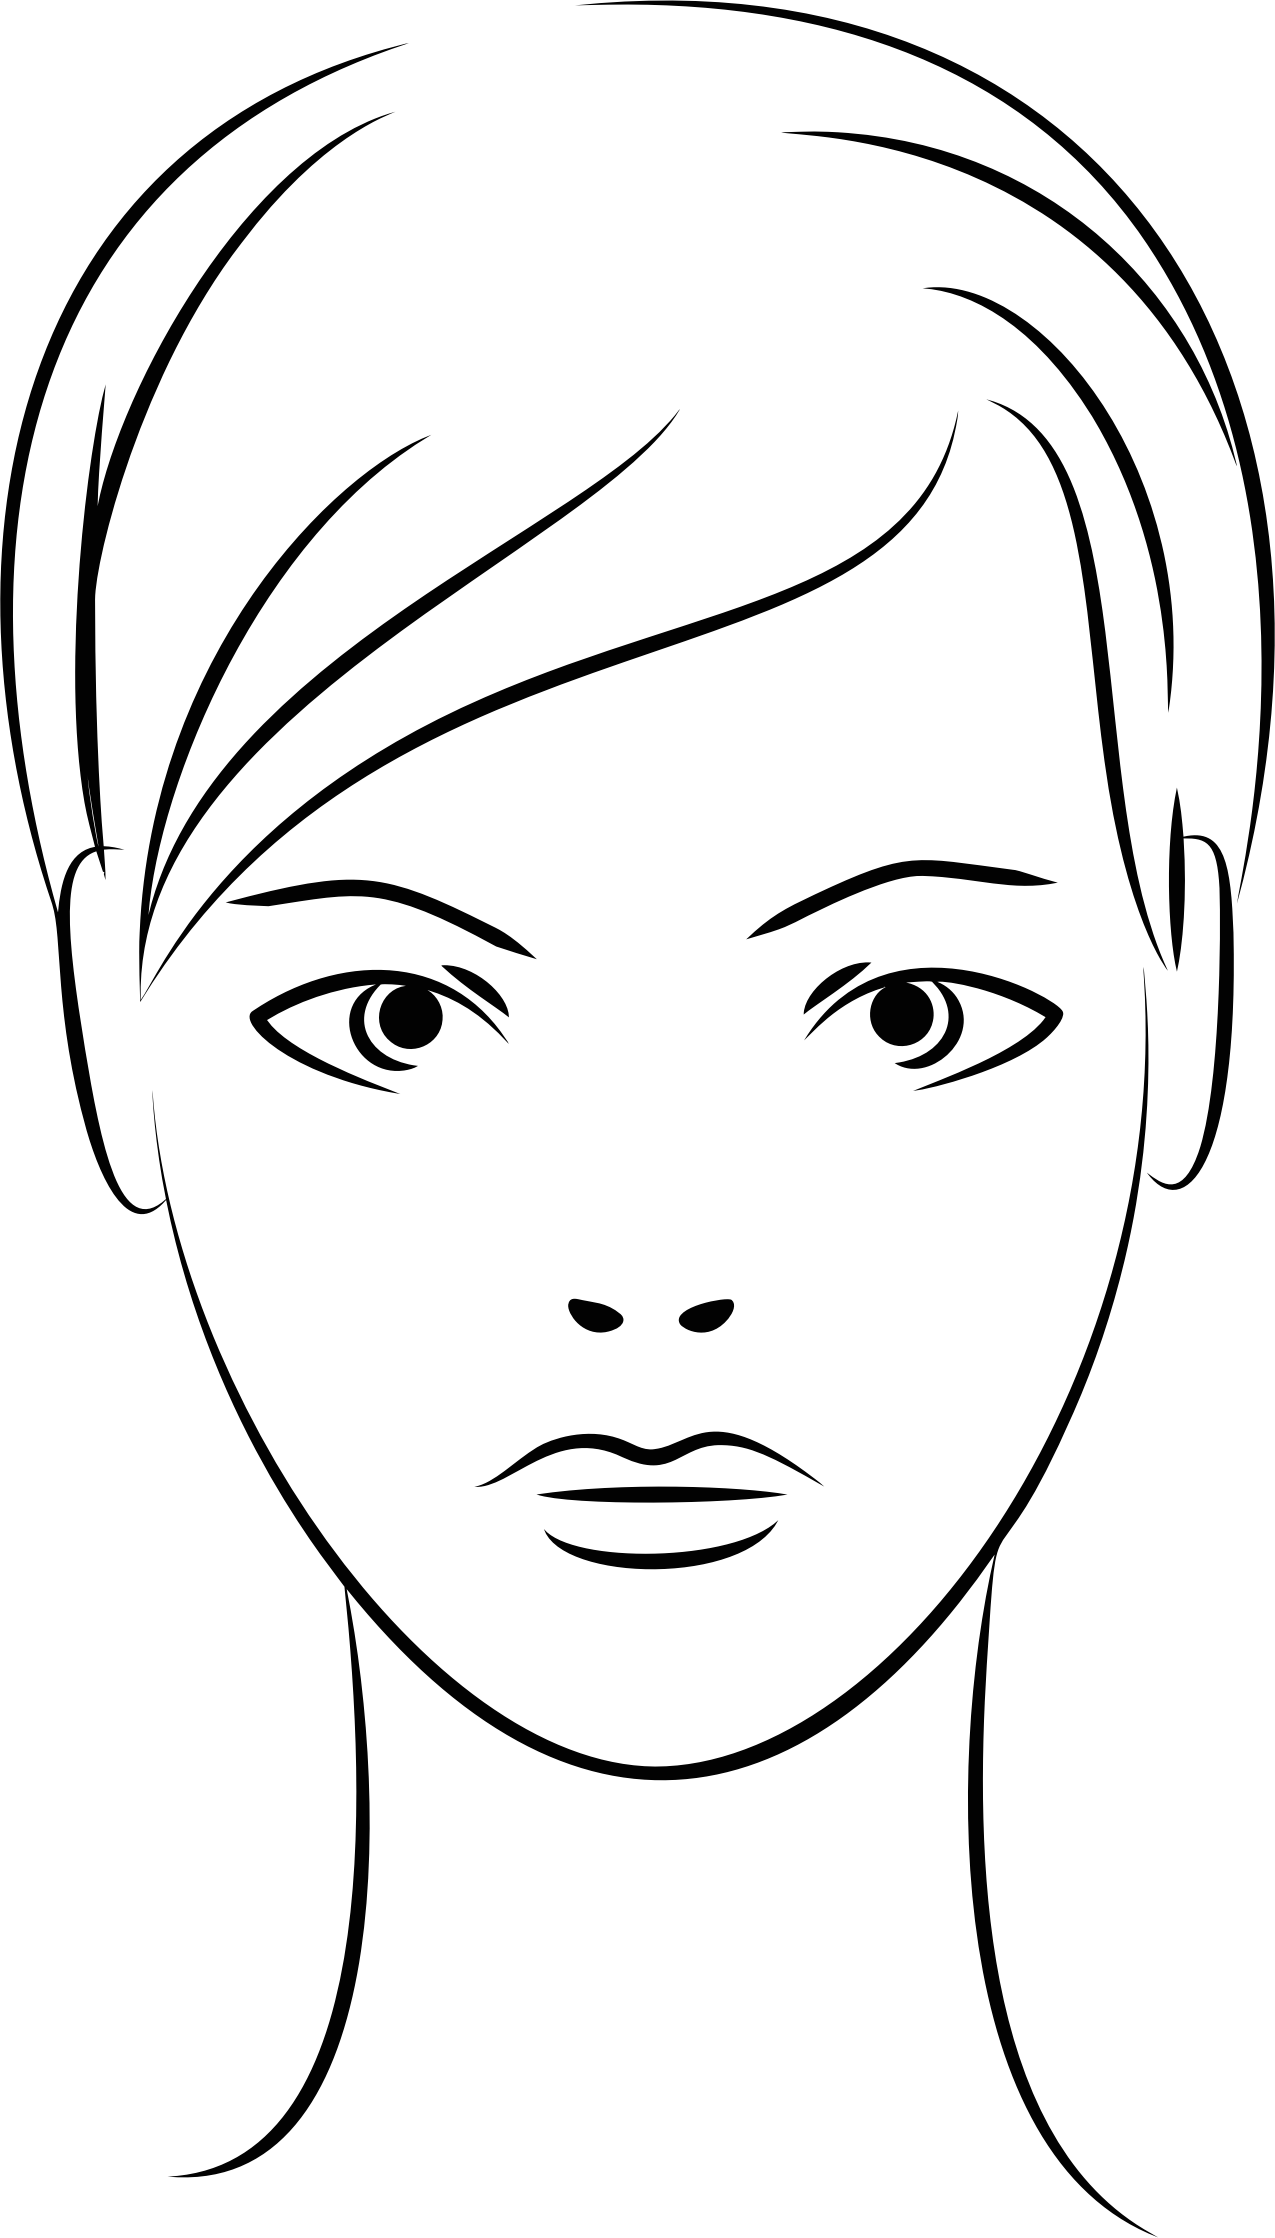 Female Face Line Art by GDJ